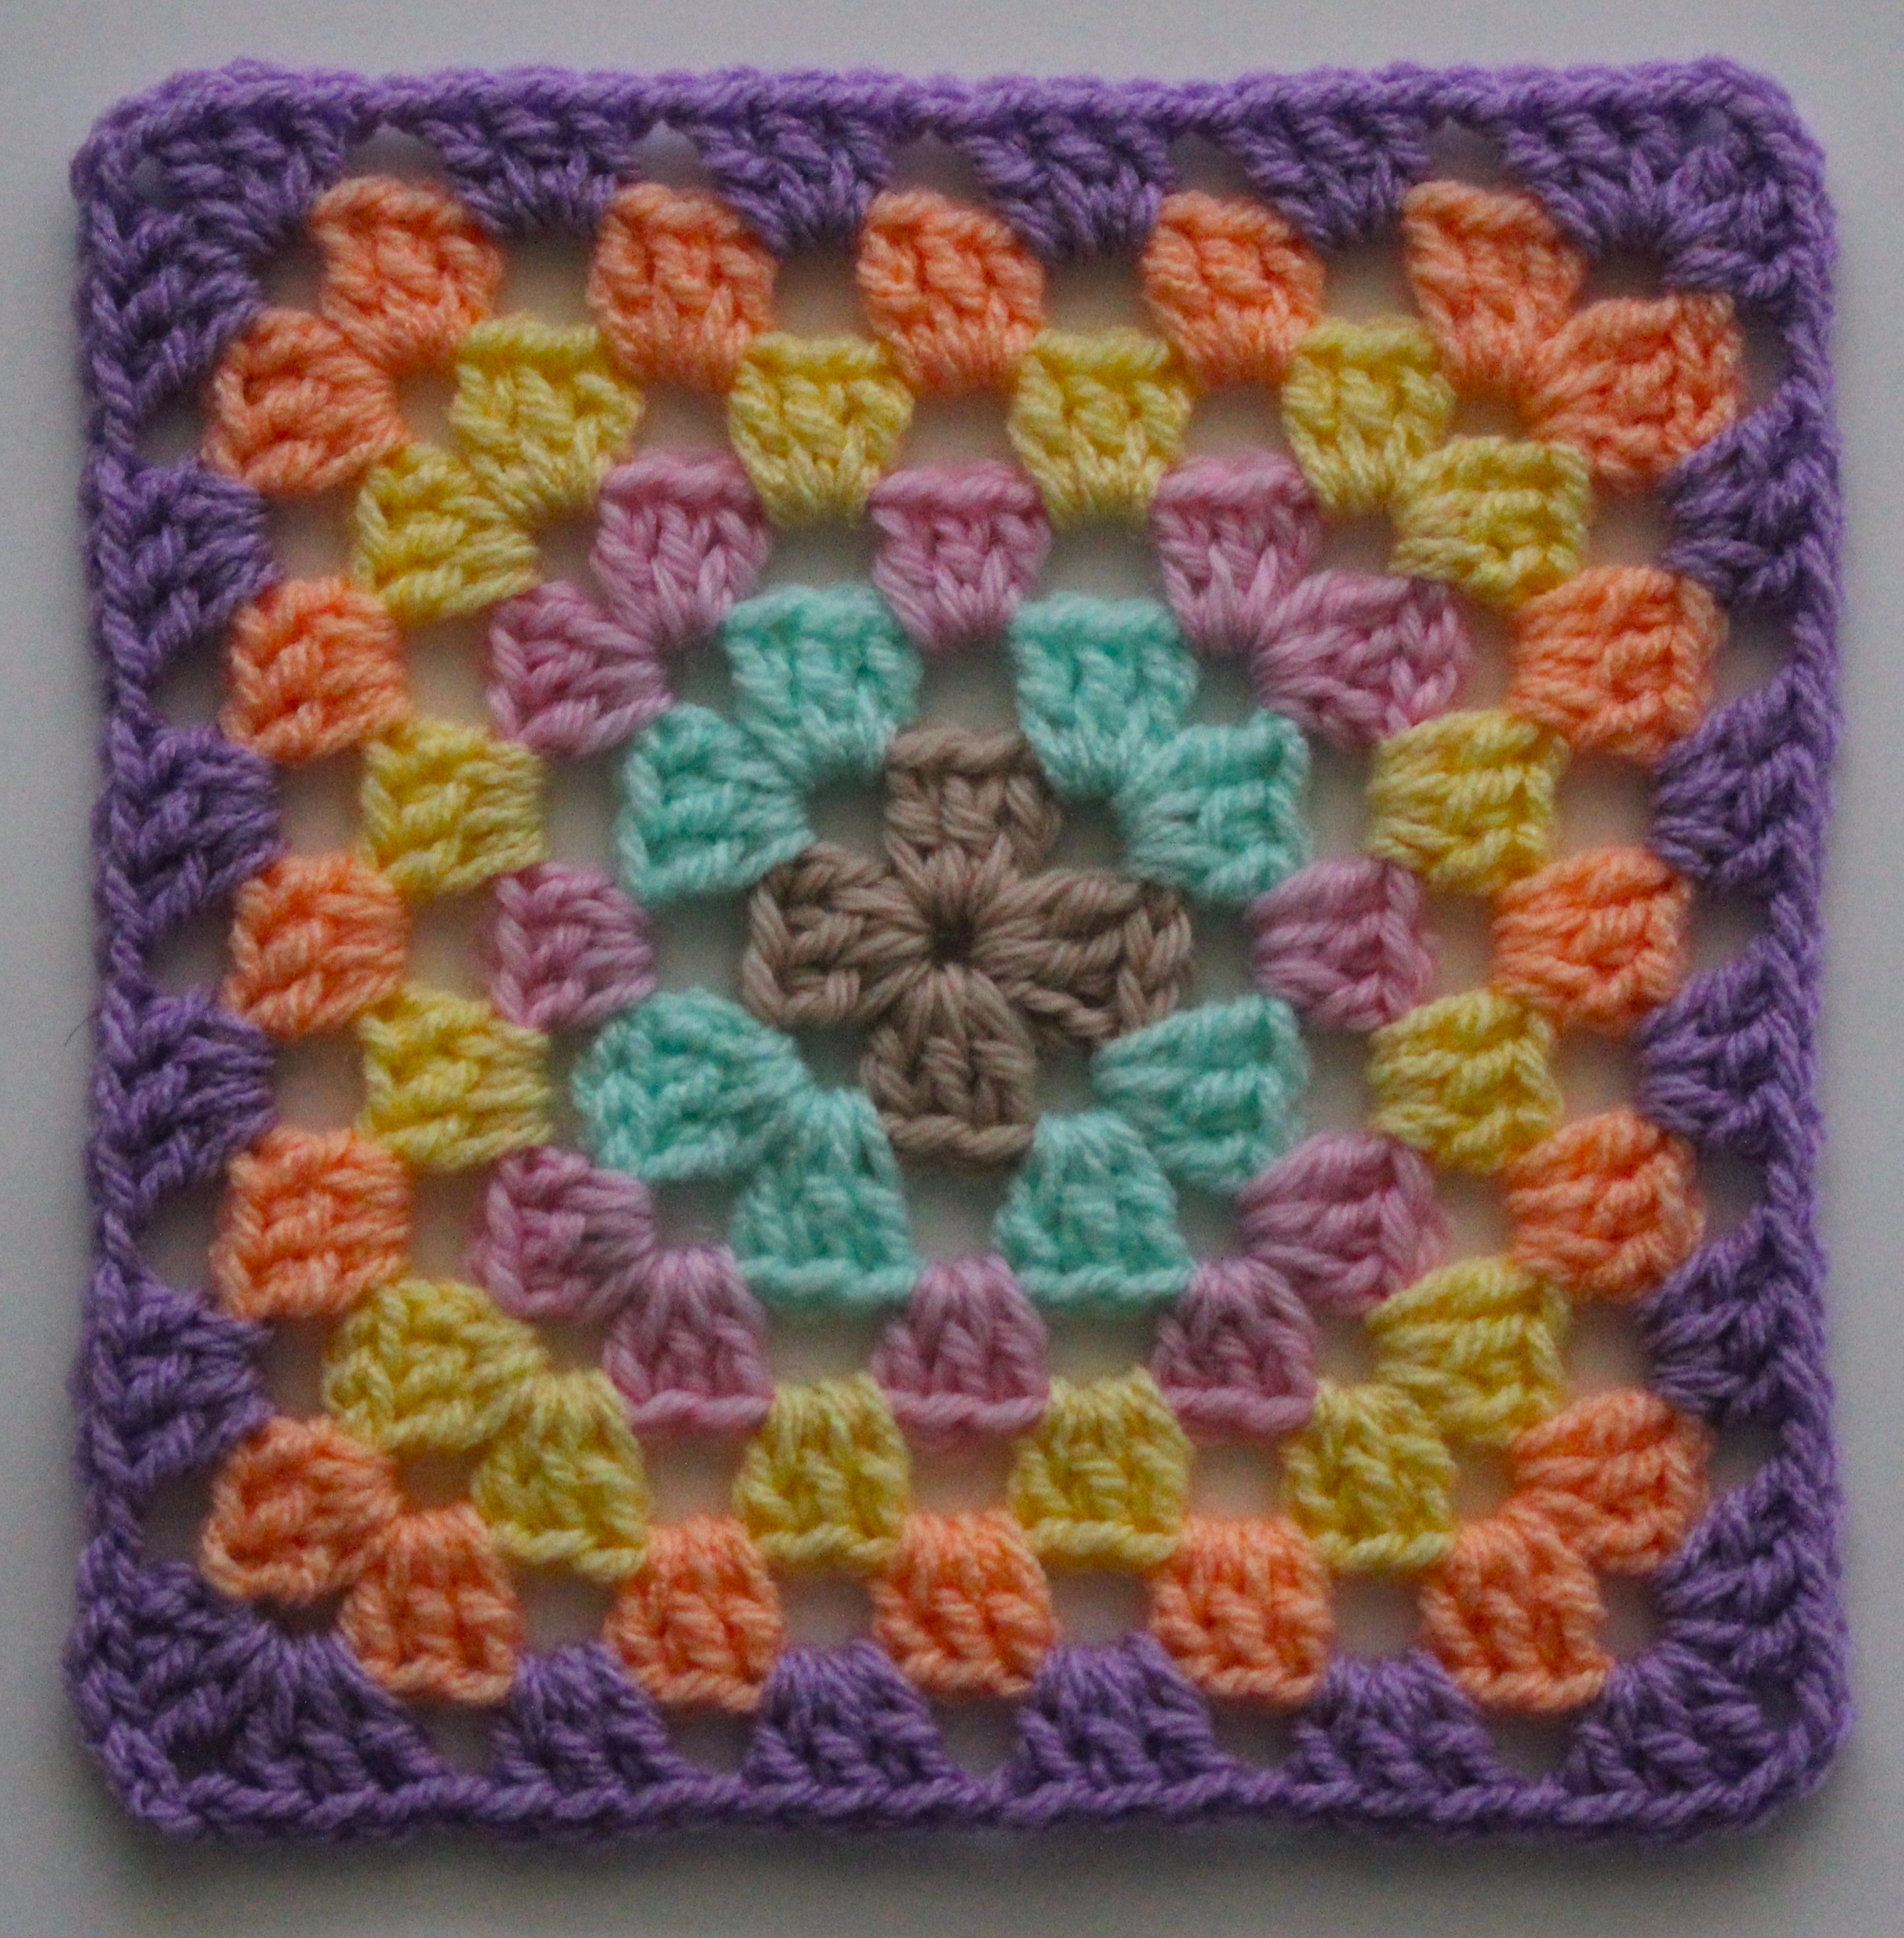 Crochet Basic Granny Square Pattern : FREE Motif Monday: Basic Granny Square Sarah London